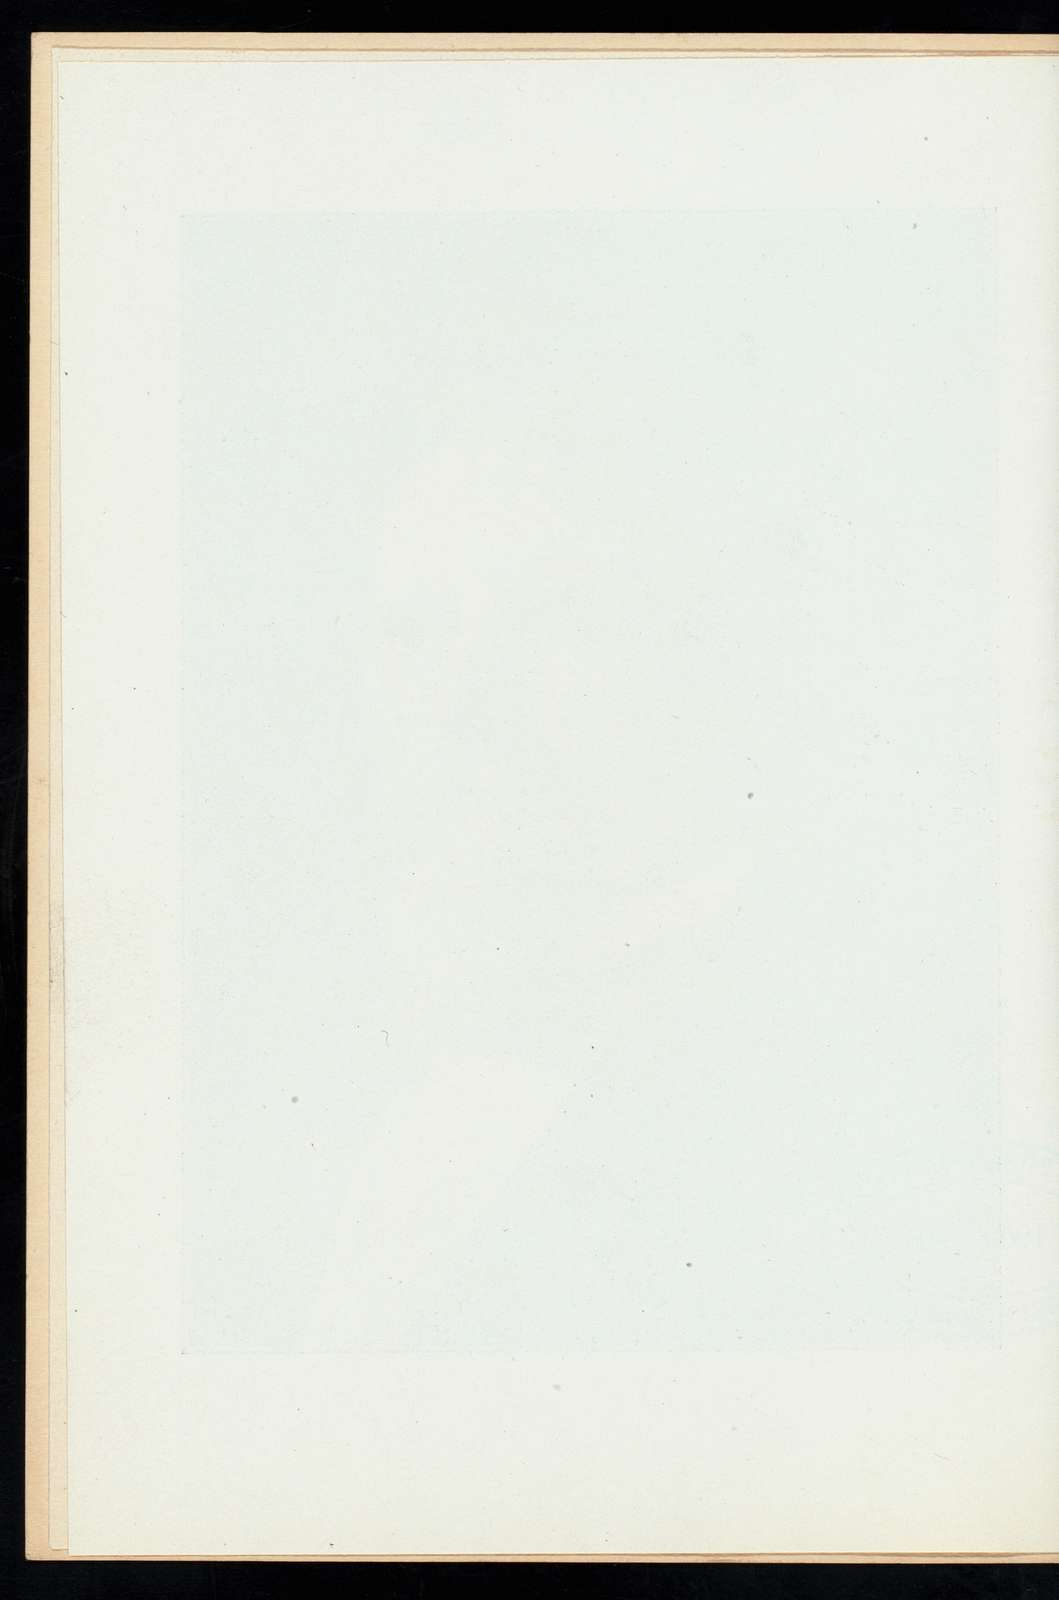 "IN COMMEMORATION OF OUR LATE COMPANION AND COMMANDER GENERAL WALLACE [held by] MILITARY ORDER OF THE LOYAL LEGION OF THE UNITED STATES COMMANDERY OF THE STATE OF INDIANA [at] ""COLUMBIA CLUB, INDIANAPOLIS"" (OTHER [PRIVATE CLUB];)"